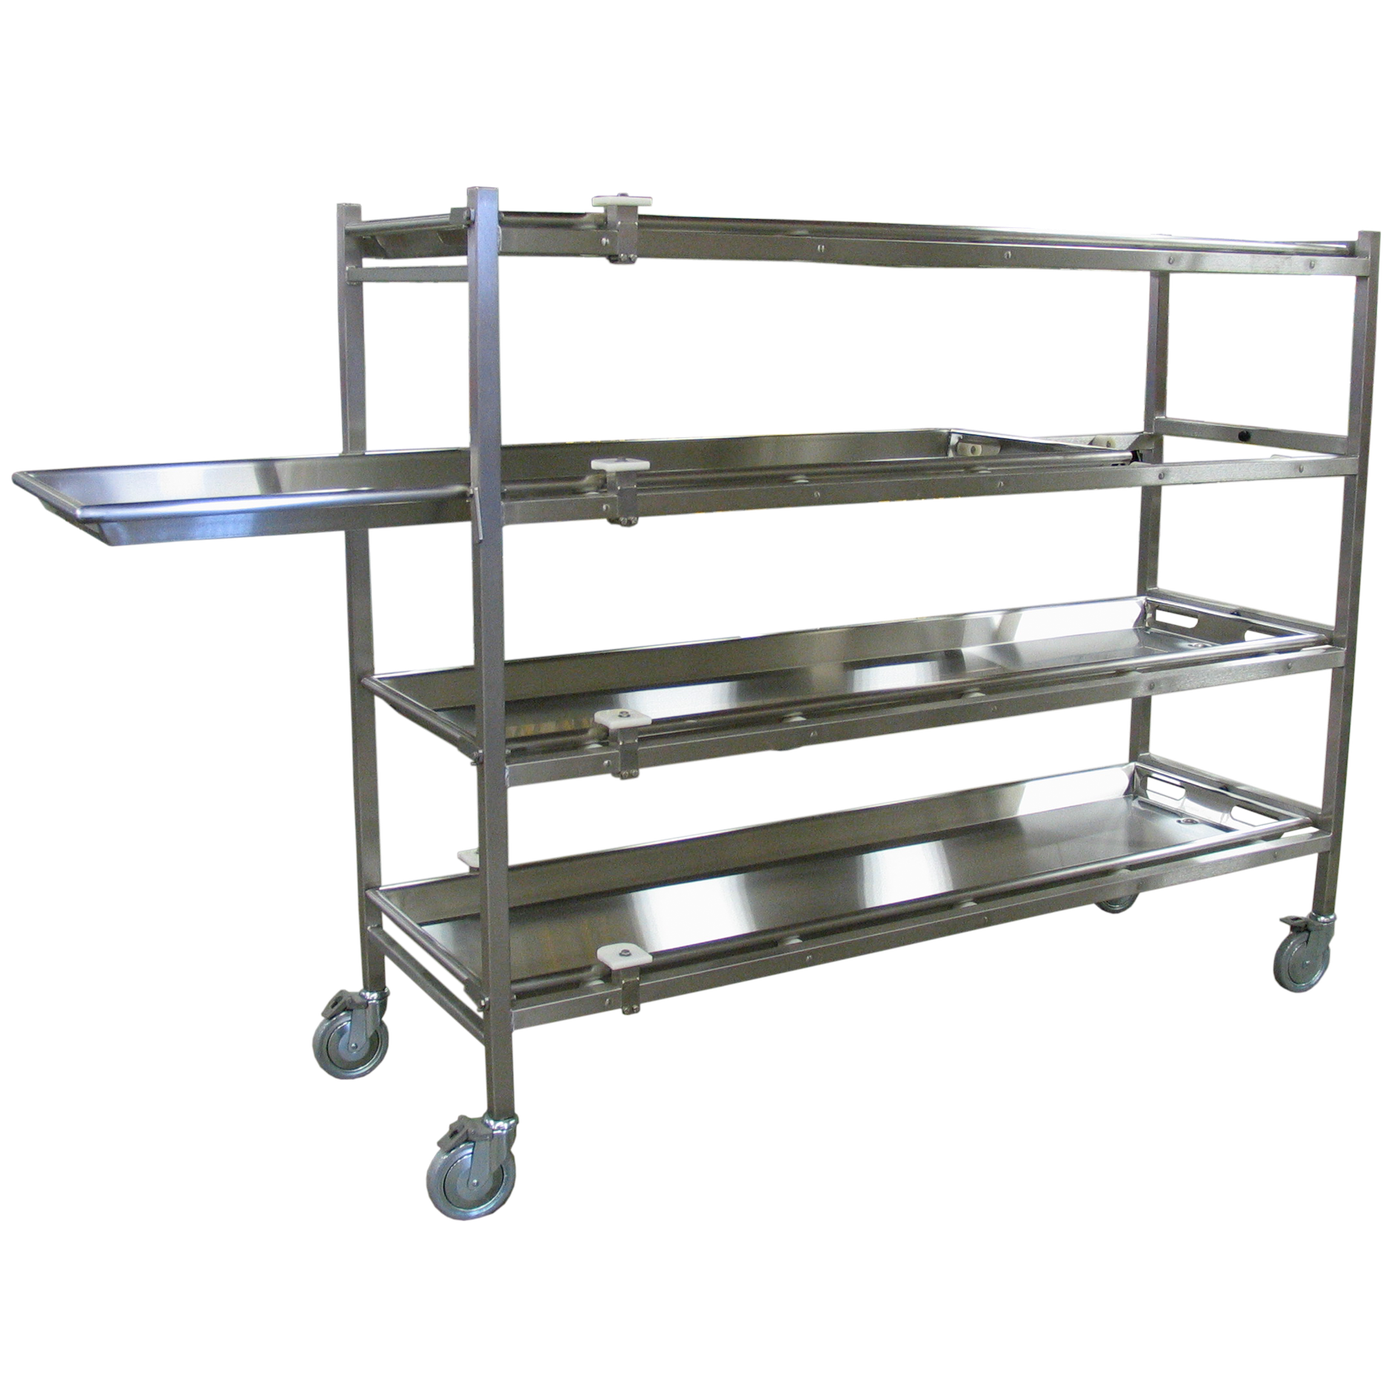 Portable Mortuary Rack with Rollers-Cadaver Handling & Storage Systems-Mortech Manufacturing Company Inc. Quality Stainless Steel Autopsy, Morgue, Funeral Home, Necropsy, Veterinary / Anatomy, Dissection Equipment and Accessories